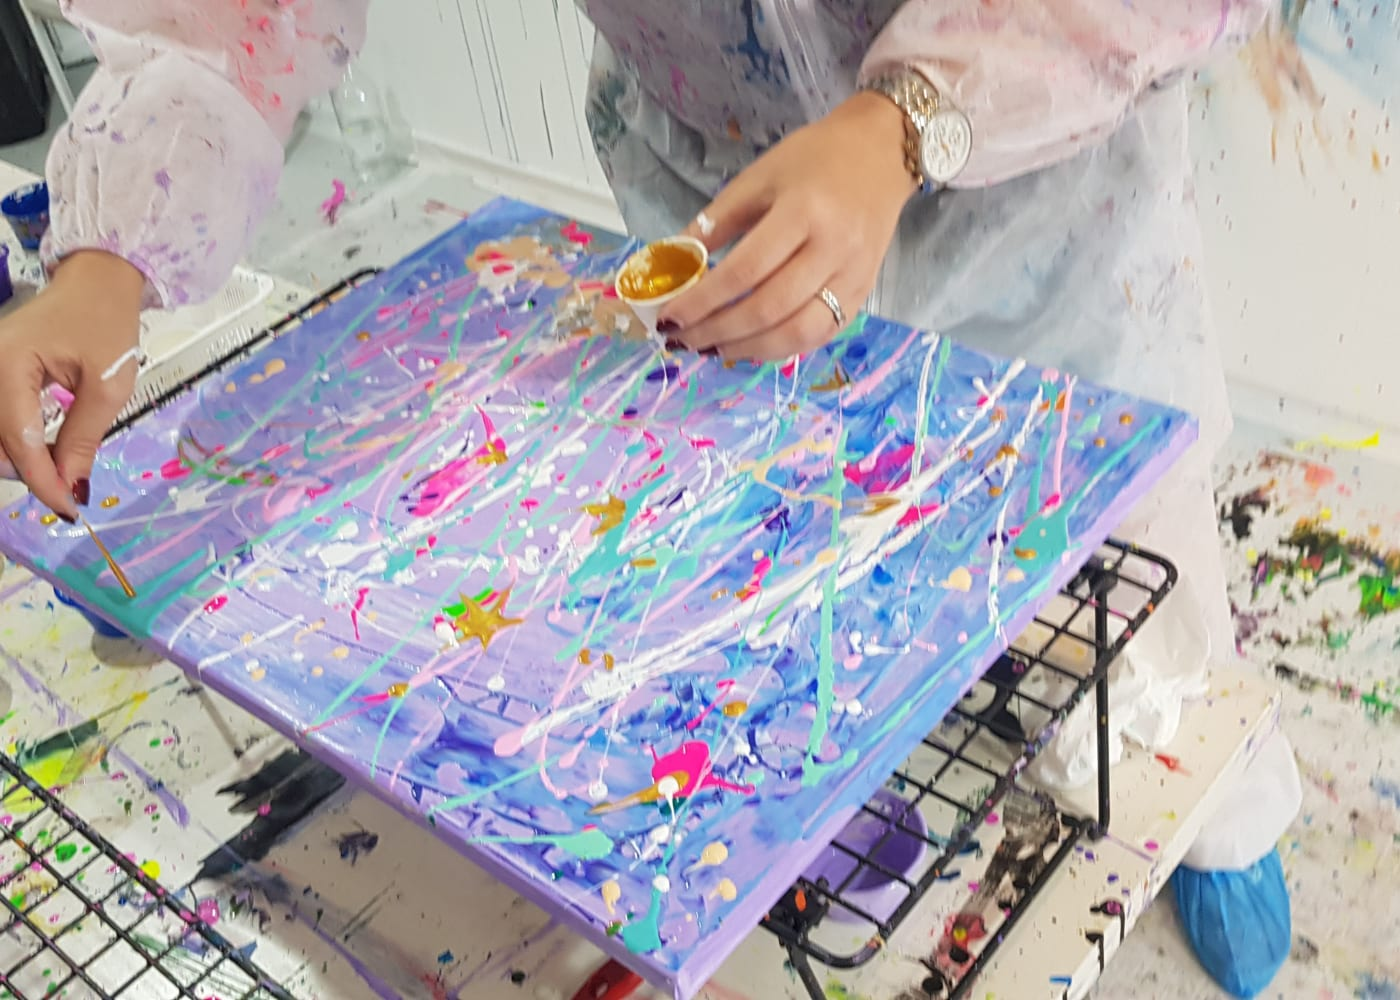 Find of the week: At Splat Paint House, kids can unleash their inner artist, get painting and get messy (and the clean-up isn't on you!)